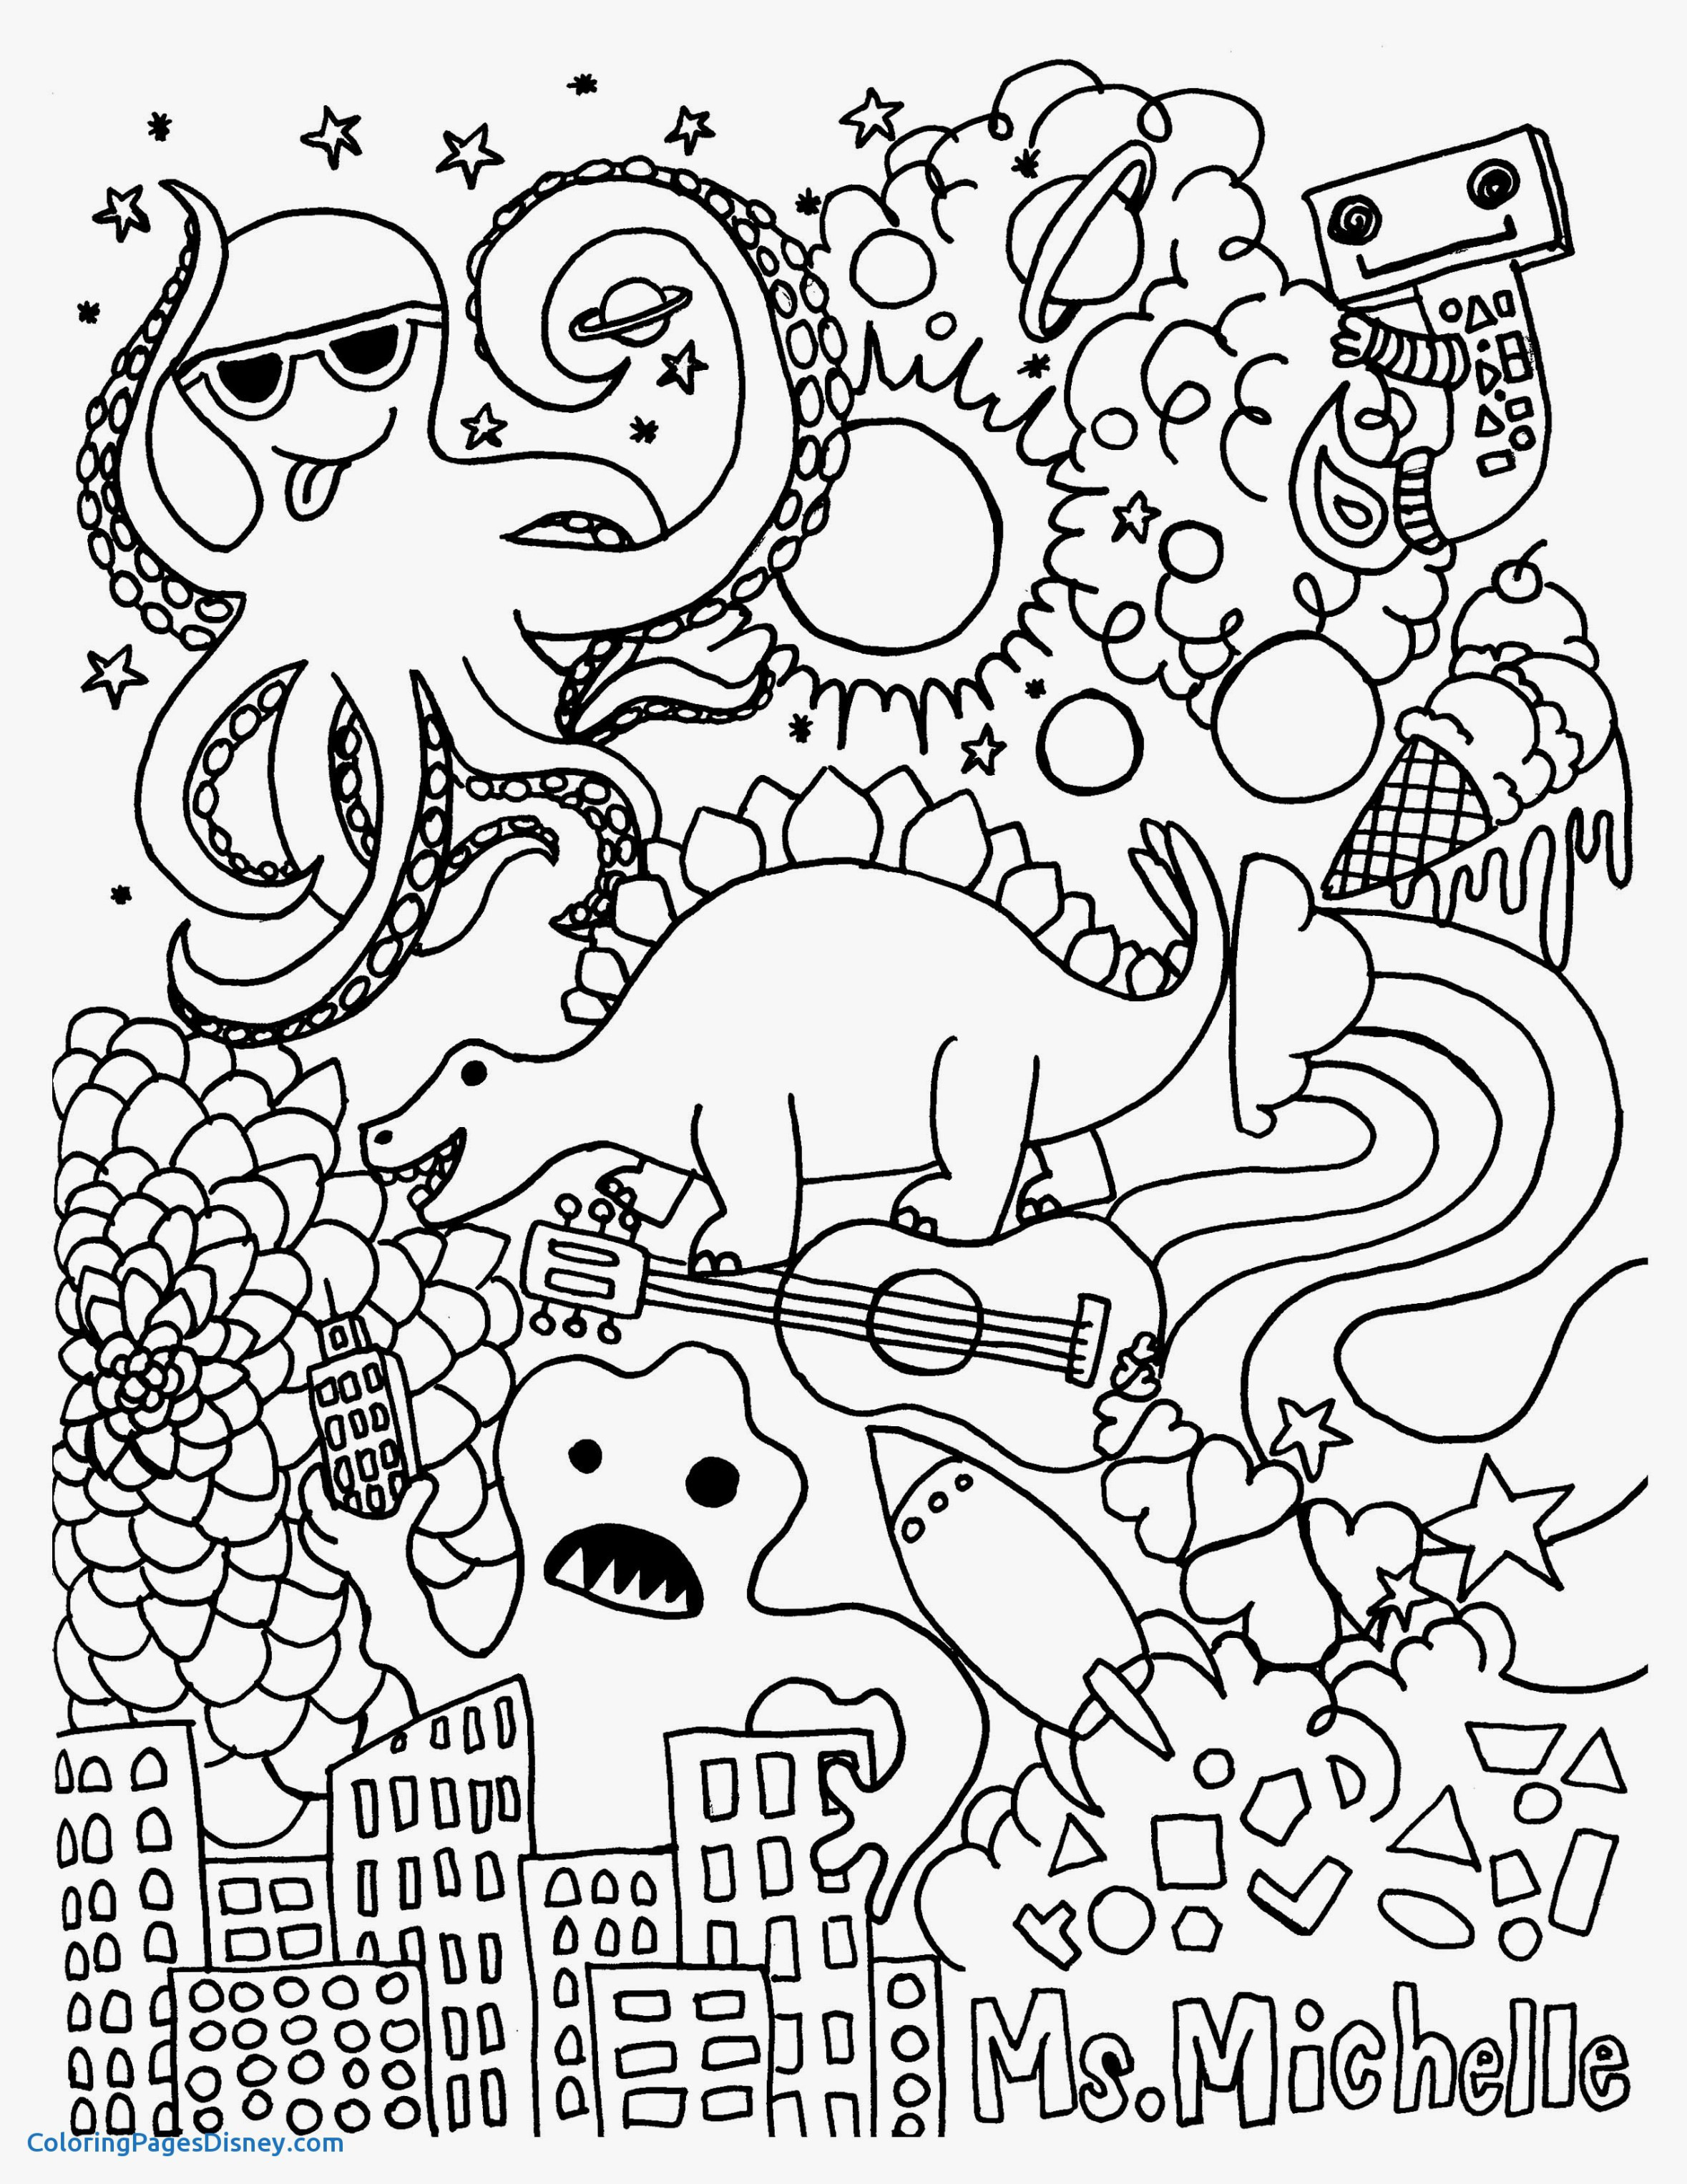 Solar Eclipse Coloring Page Elegant Solar System Sun Coloring Pages Maythesourcebewithyouco